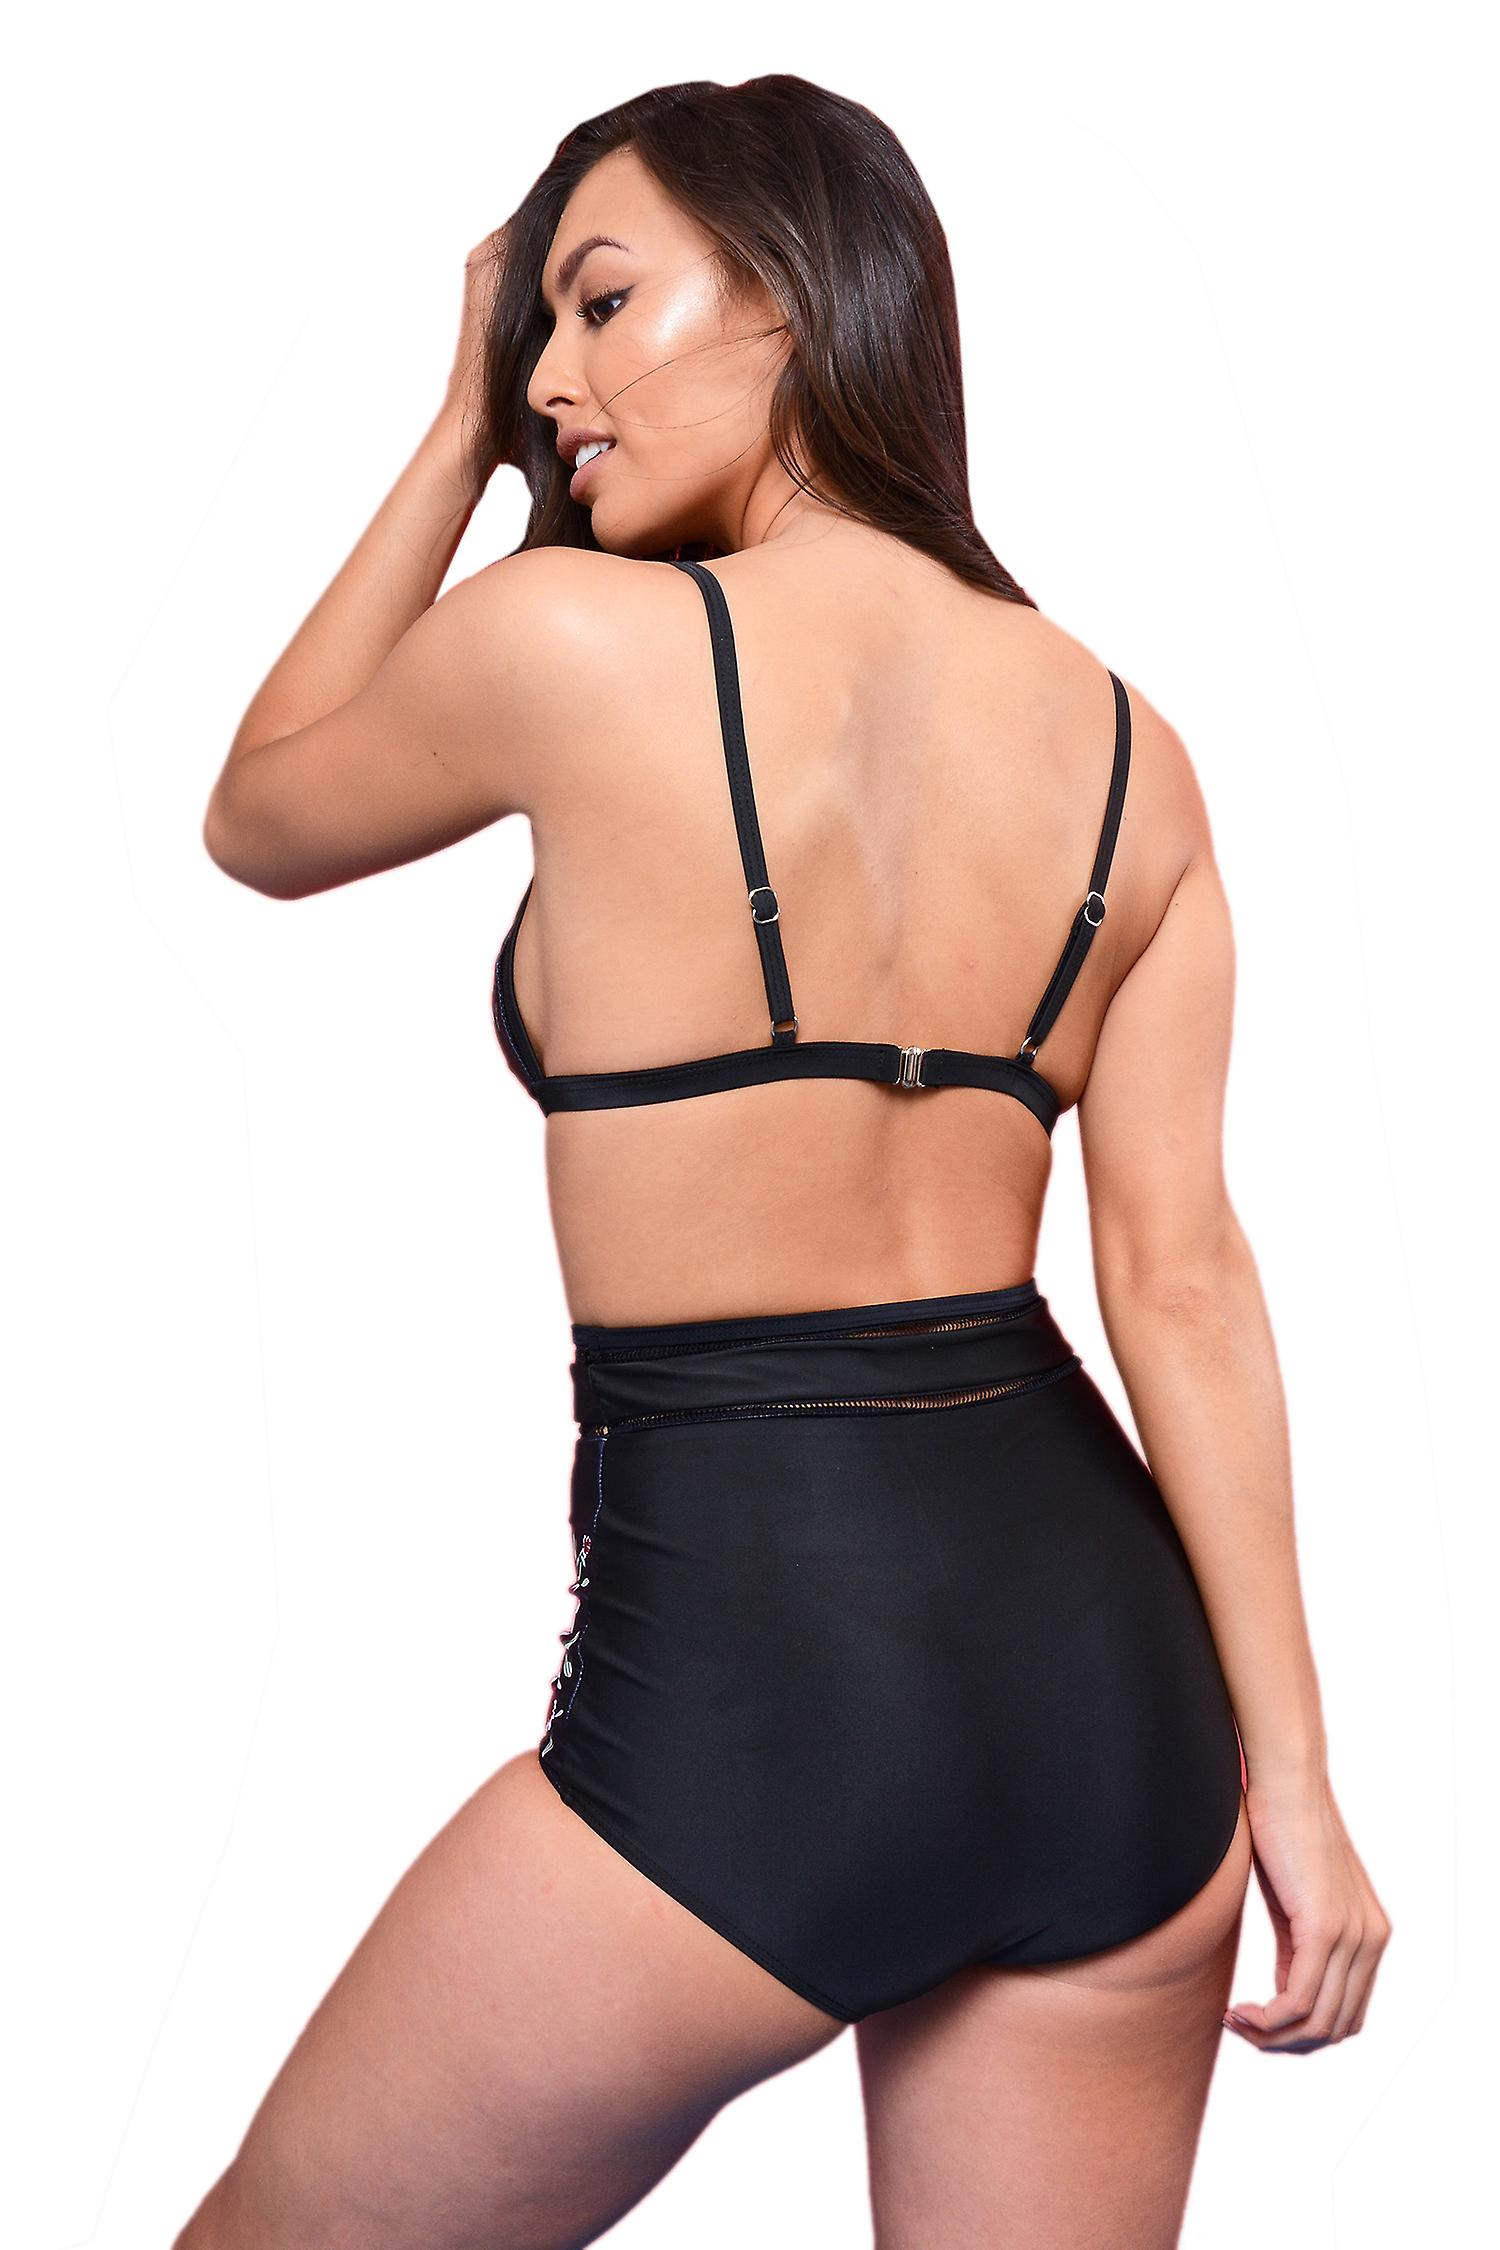 LMS Black High Waisted Bikini Set With Mesh And Floral Detail